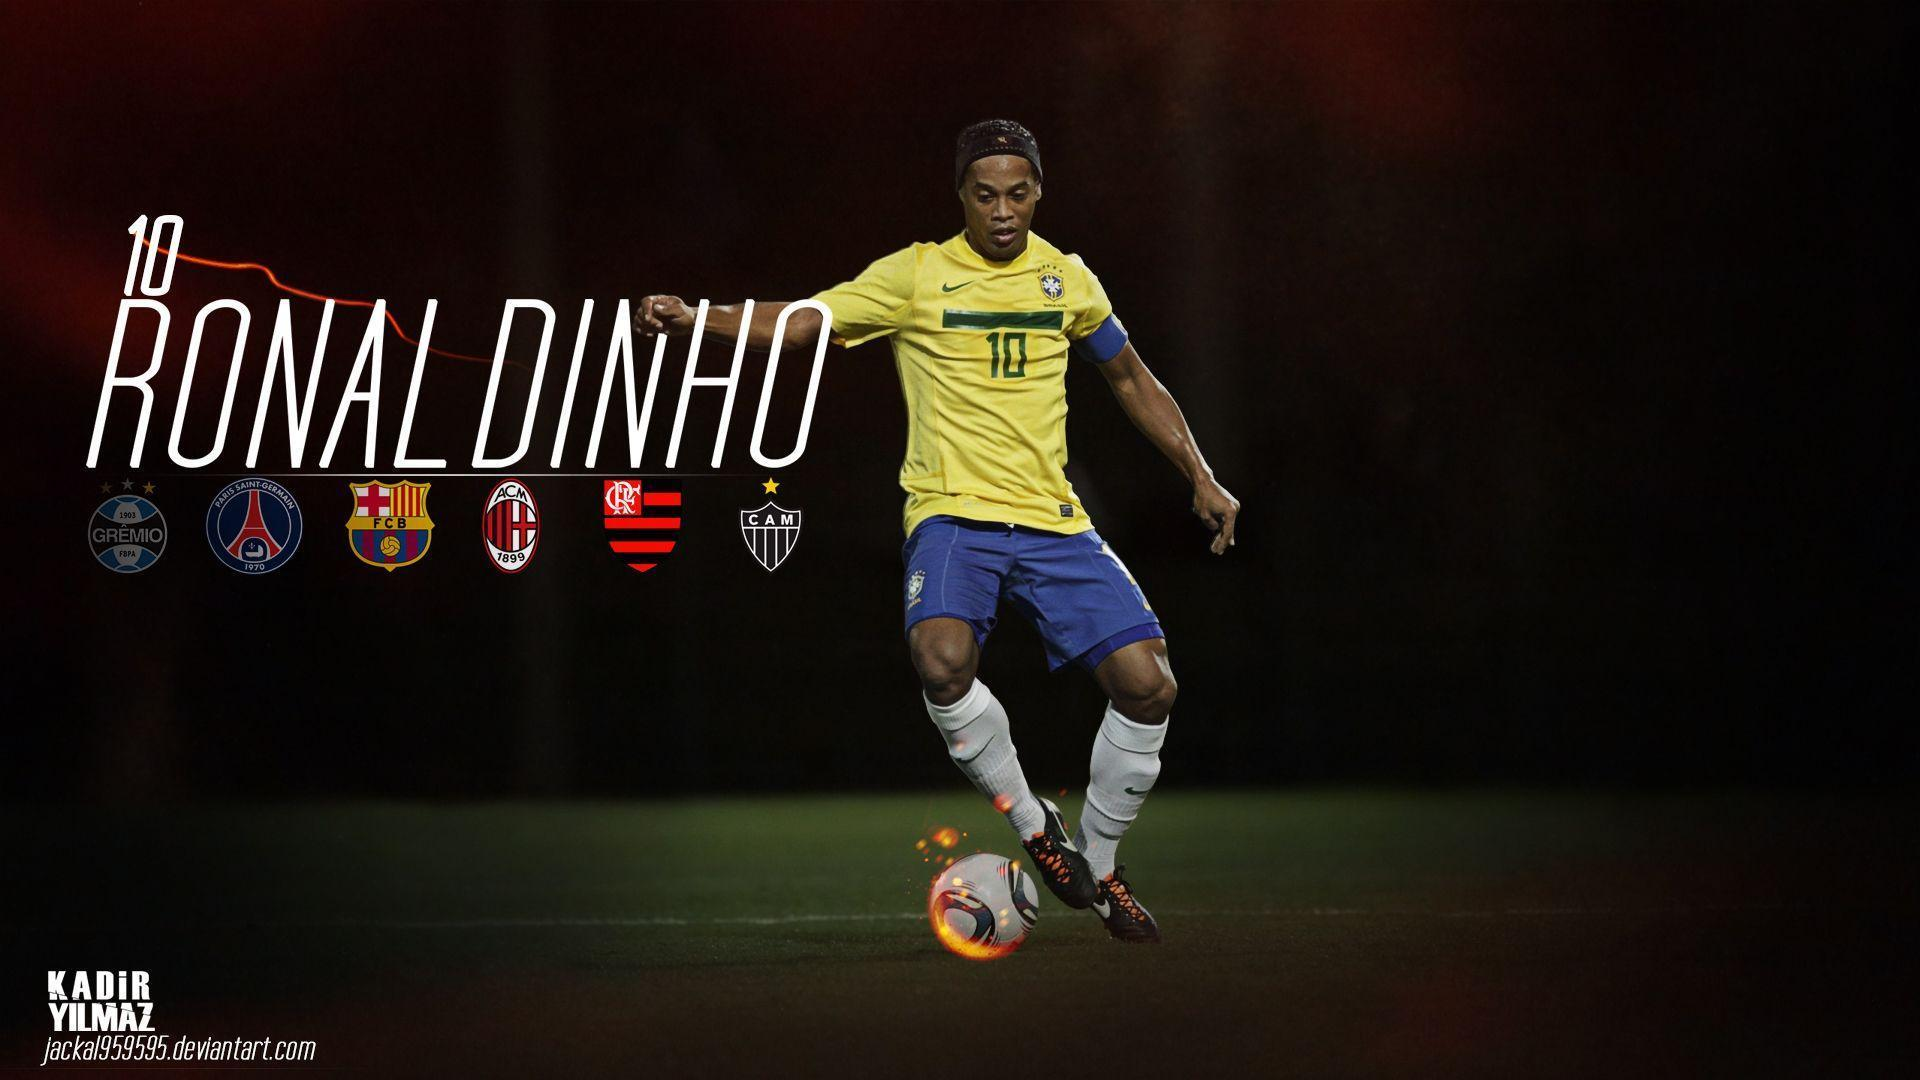 ronaldinho wallpaper hd